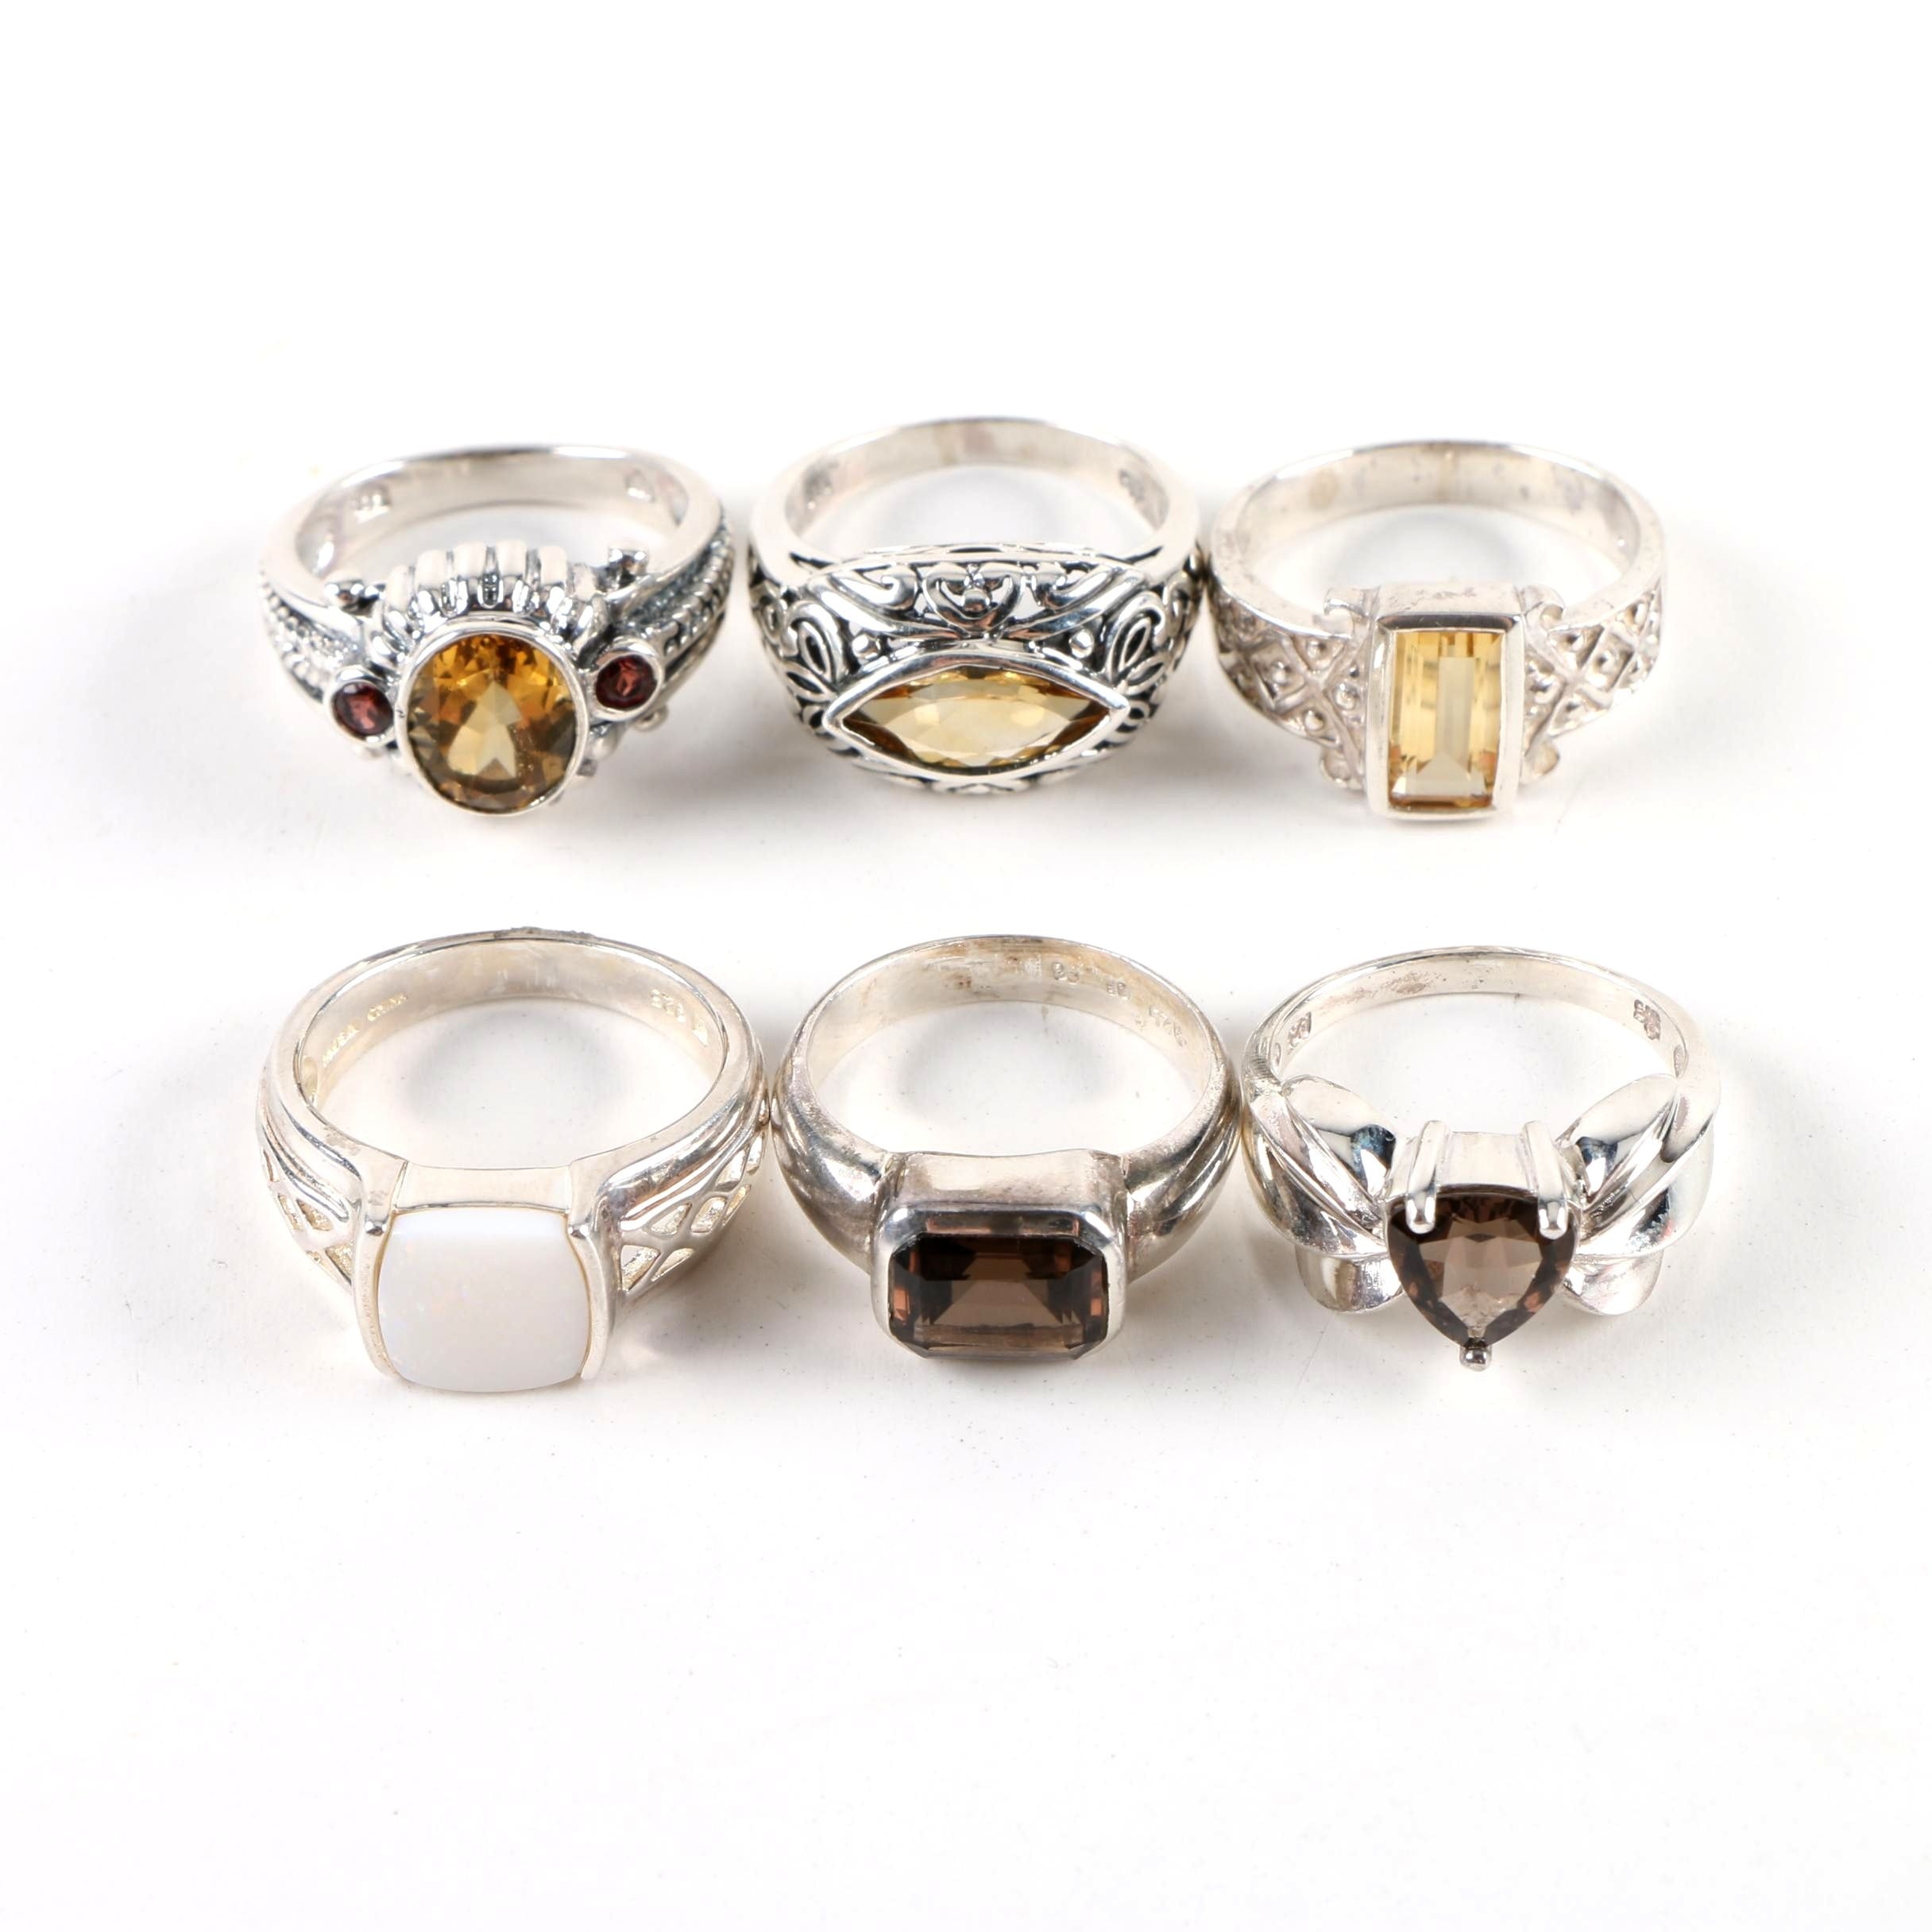 Sterling Silver Ring Assortment Including Opal, Citrine and Smoky Quartz